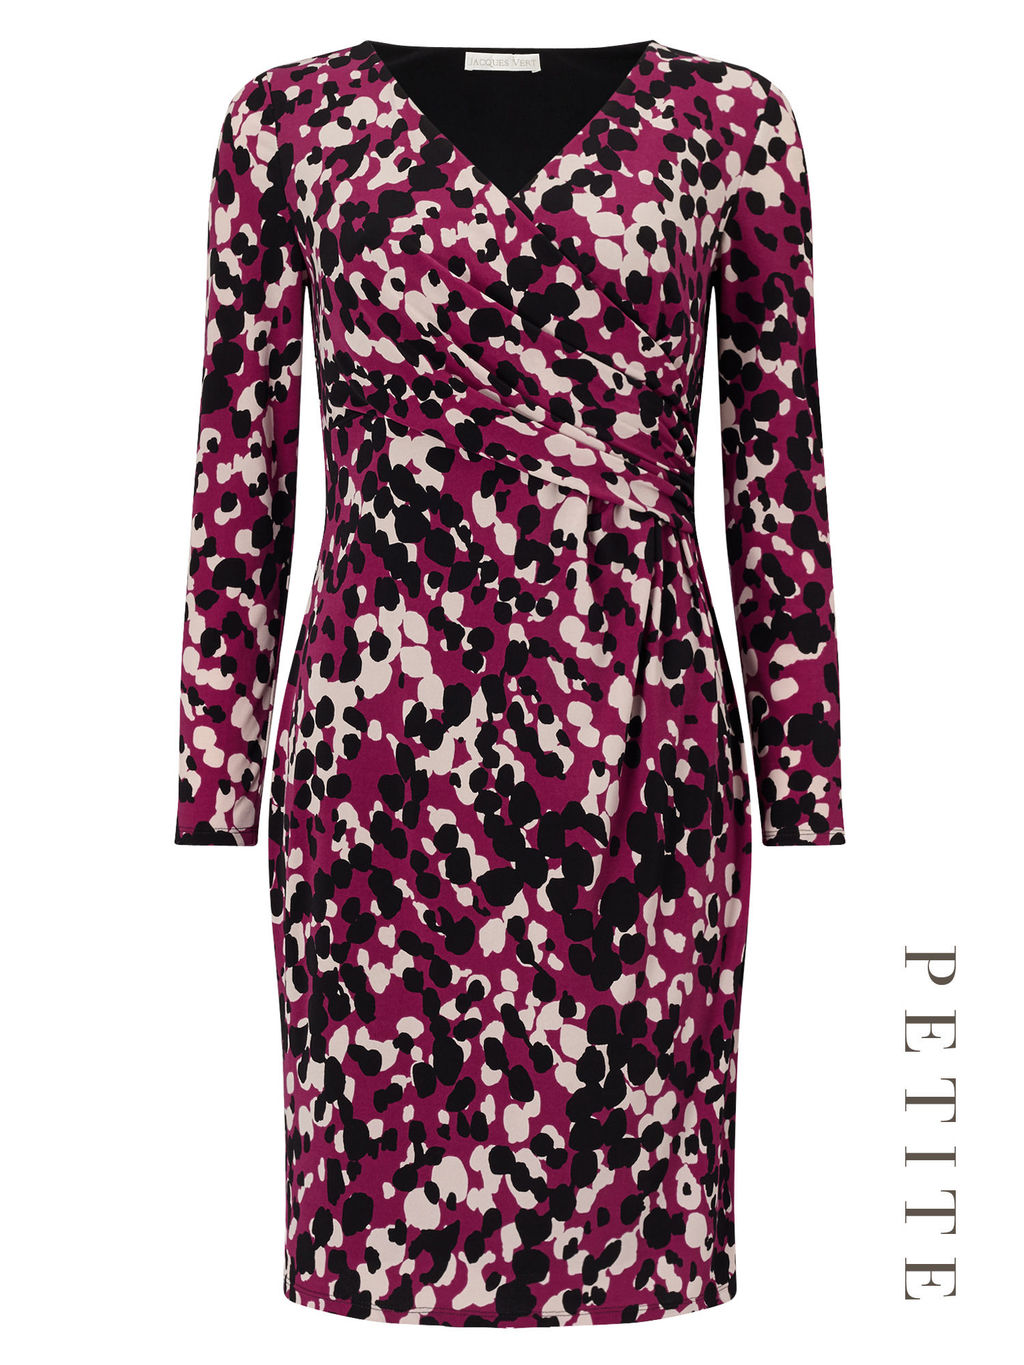 Petite Jersey Print Dress - style: faux wrap/wrap; neckline: v-neck; secondary colour: white; predominant colour: magenta; occasions: evening; length: on the knee; fit: body skimming; fibres: polyester/polyamide - stretch; sleeve length: long sleeve; sleeve style: standard; pattern type: fabric; pattern: patterned/print; texture group: jersey - stretchy/drapey; multicoloured: multicoloured; season: a/w 2016; wardrobe: event